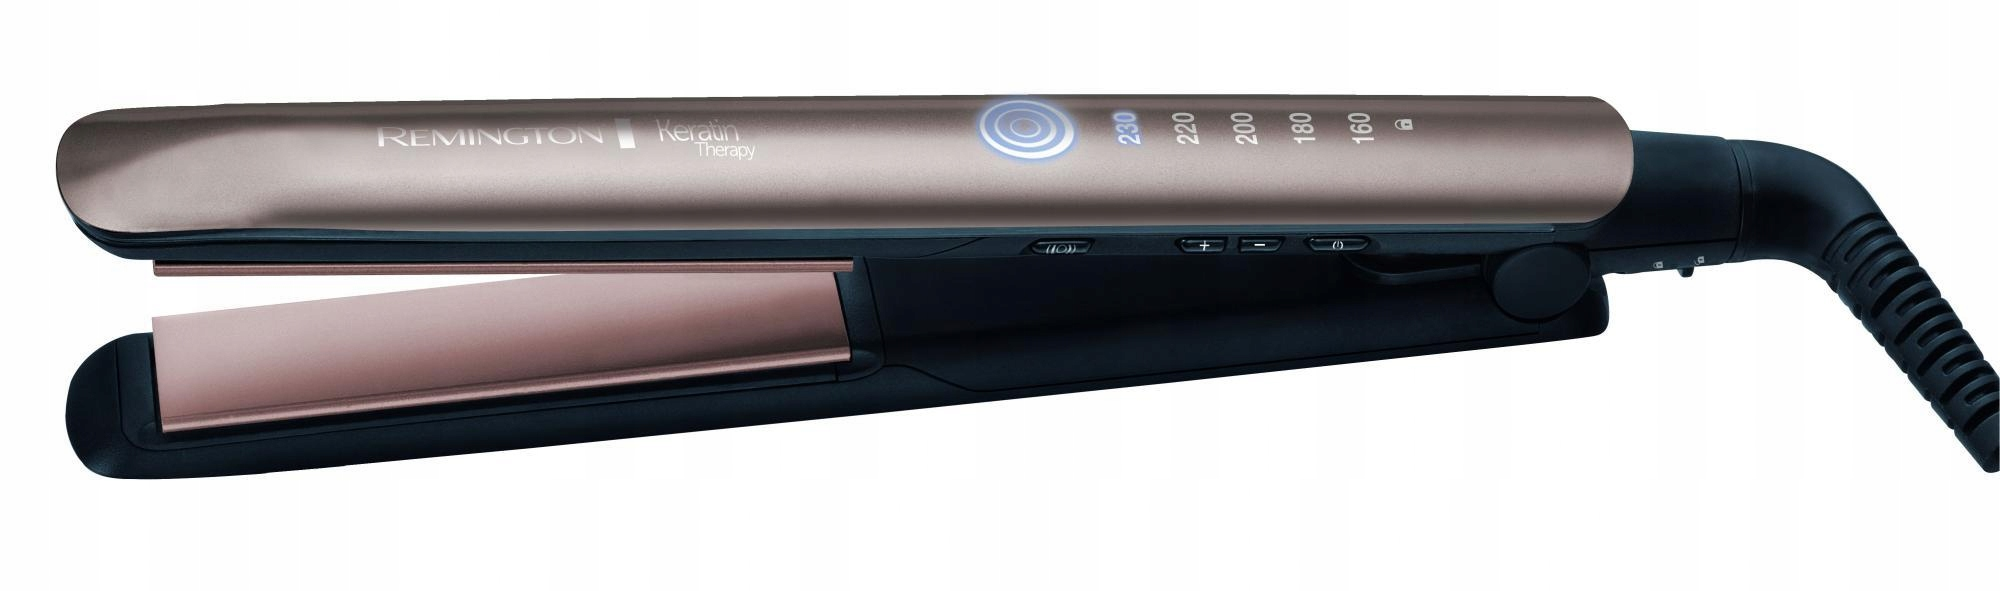 REMINGTON S8590 STRAIGHTENER Keratin Pro Датчик